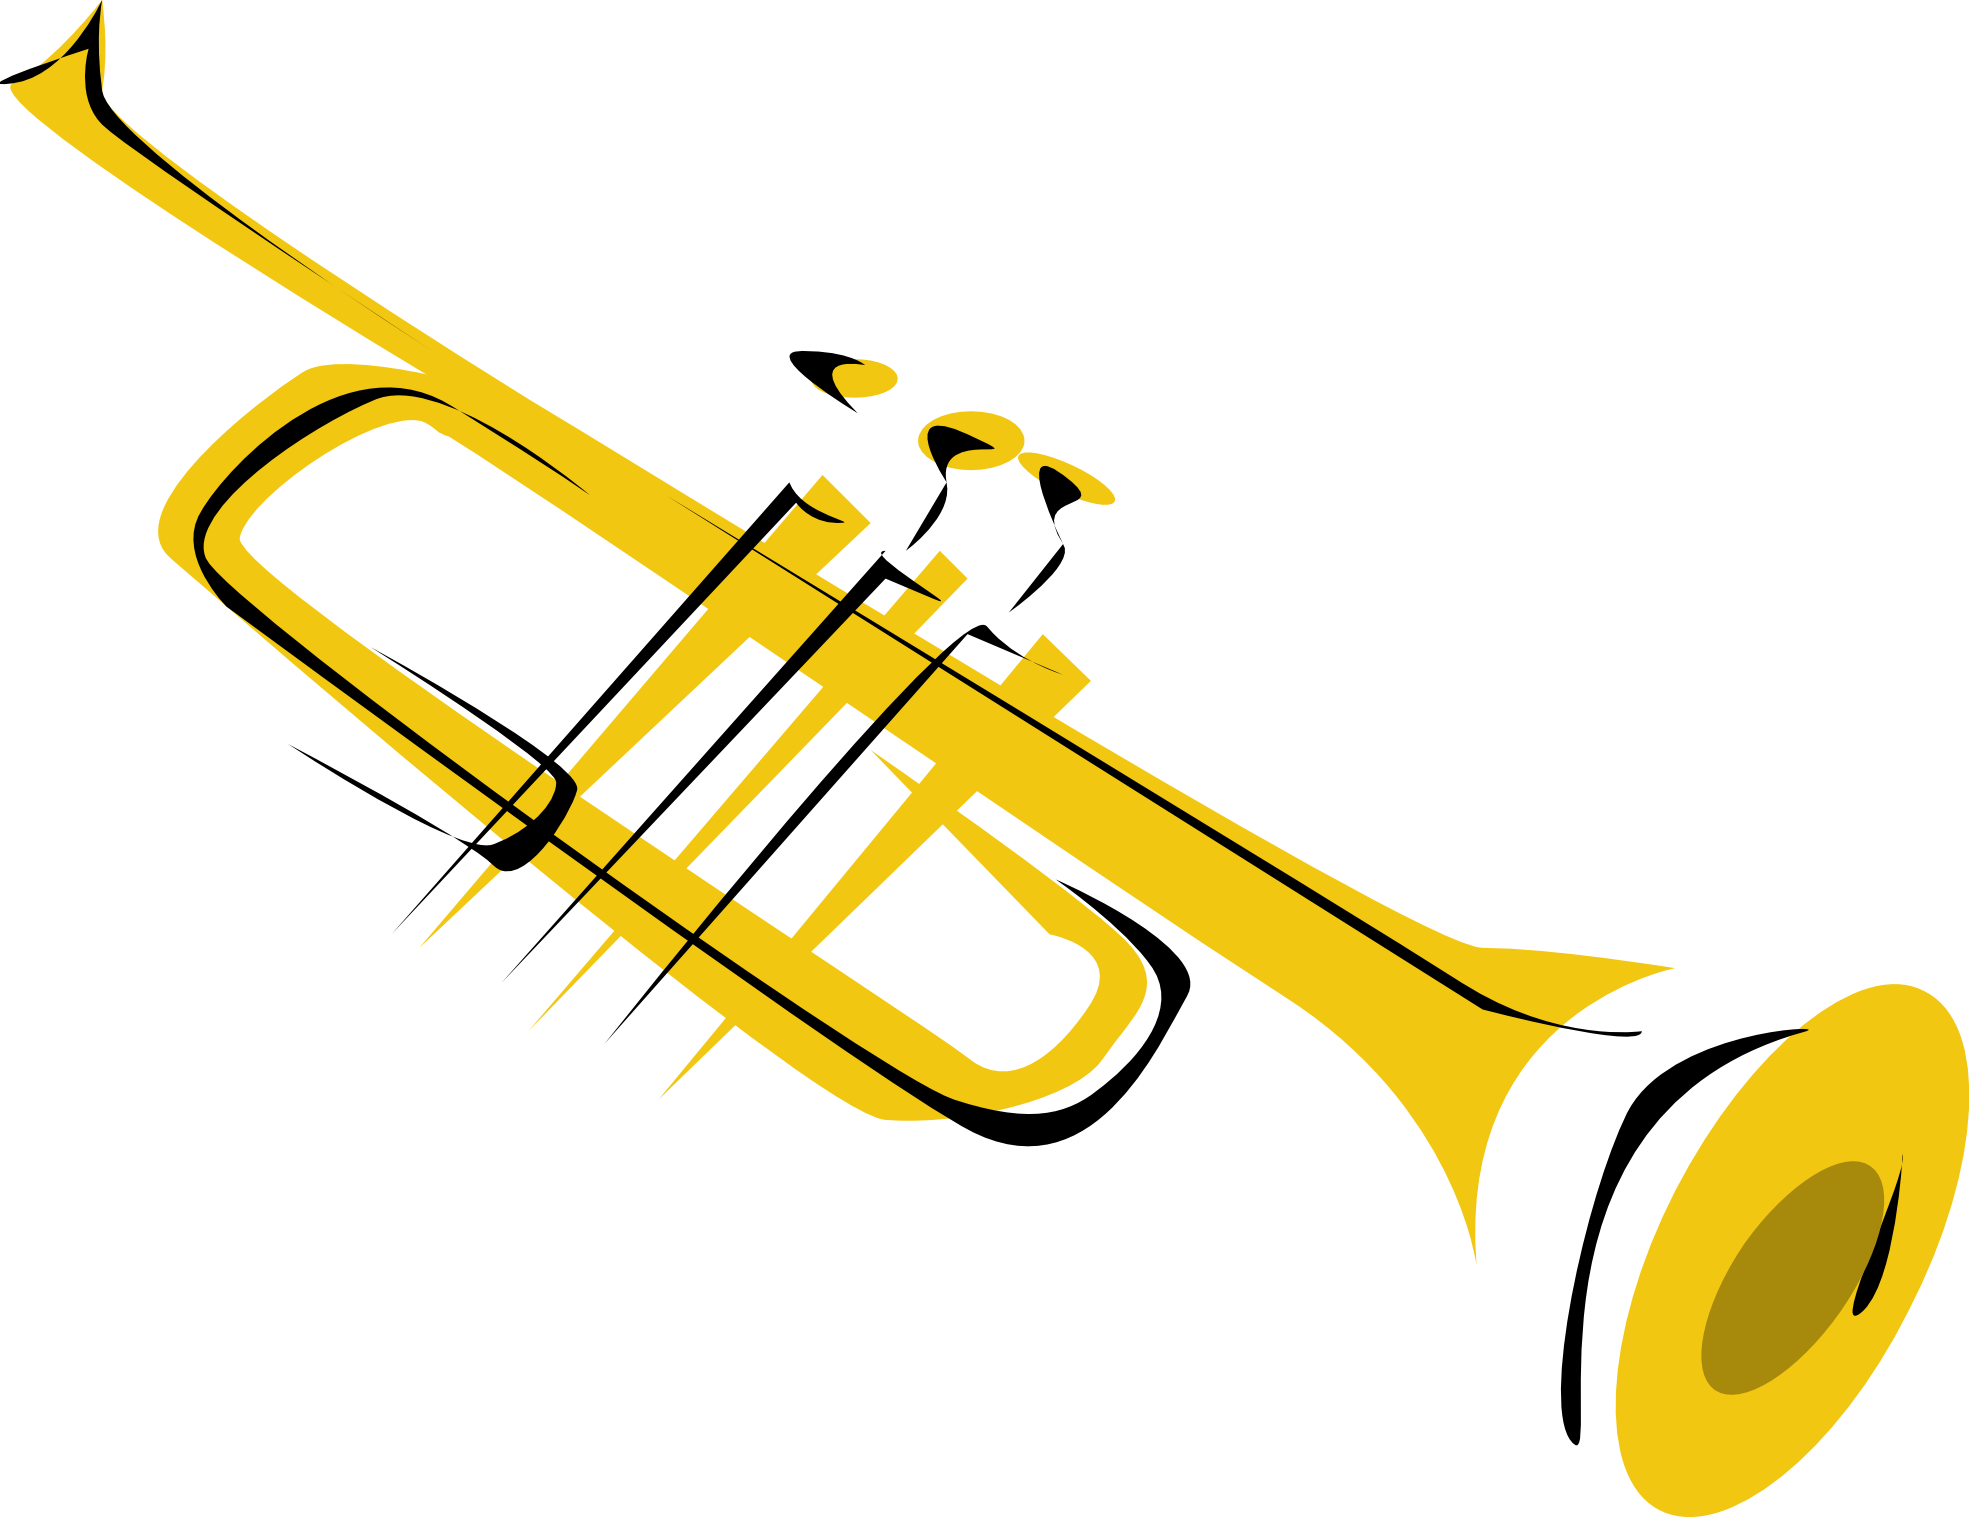 Clipart Trumpet - Cliparts.co